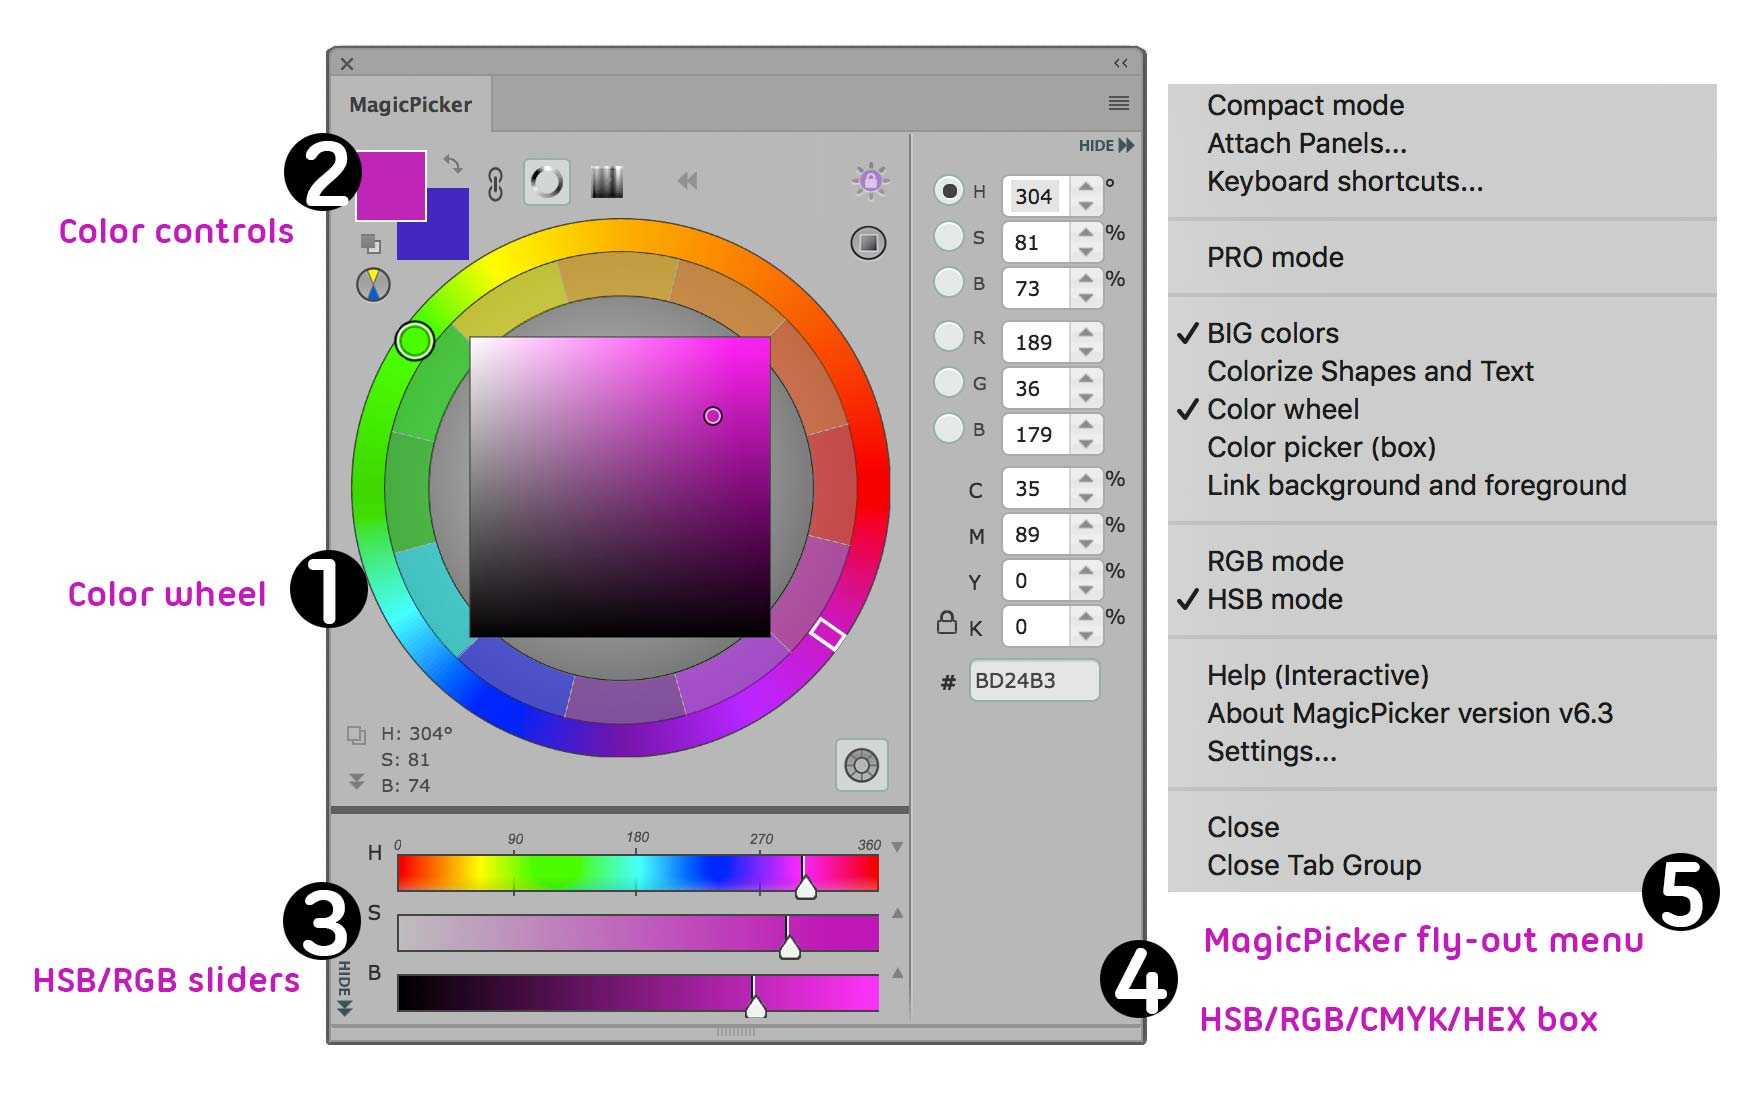 MagicPicker color wheel mode areas